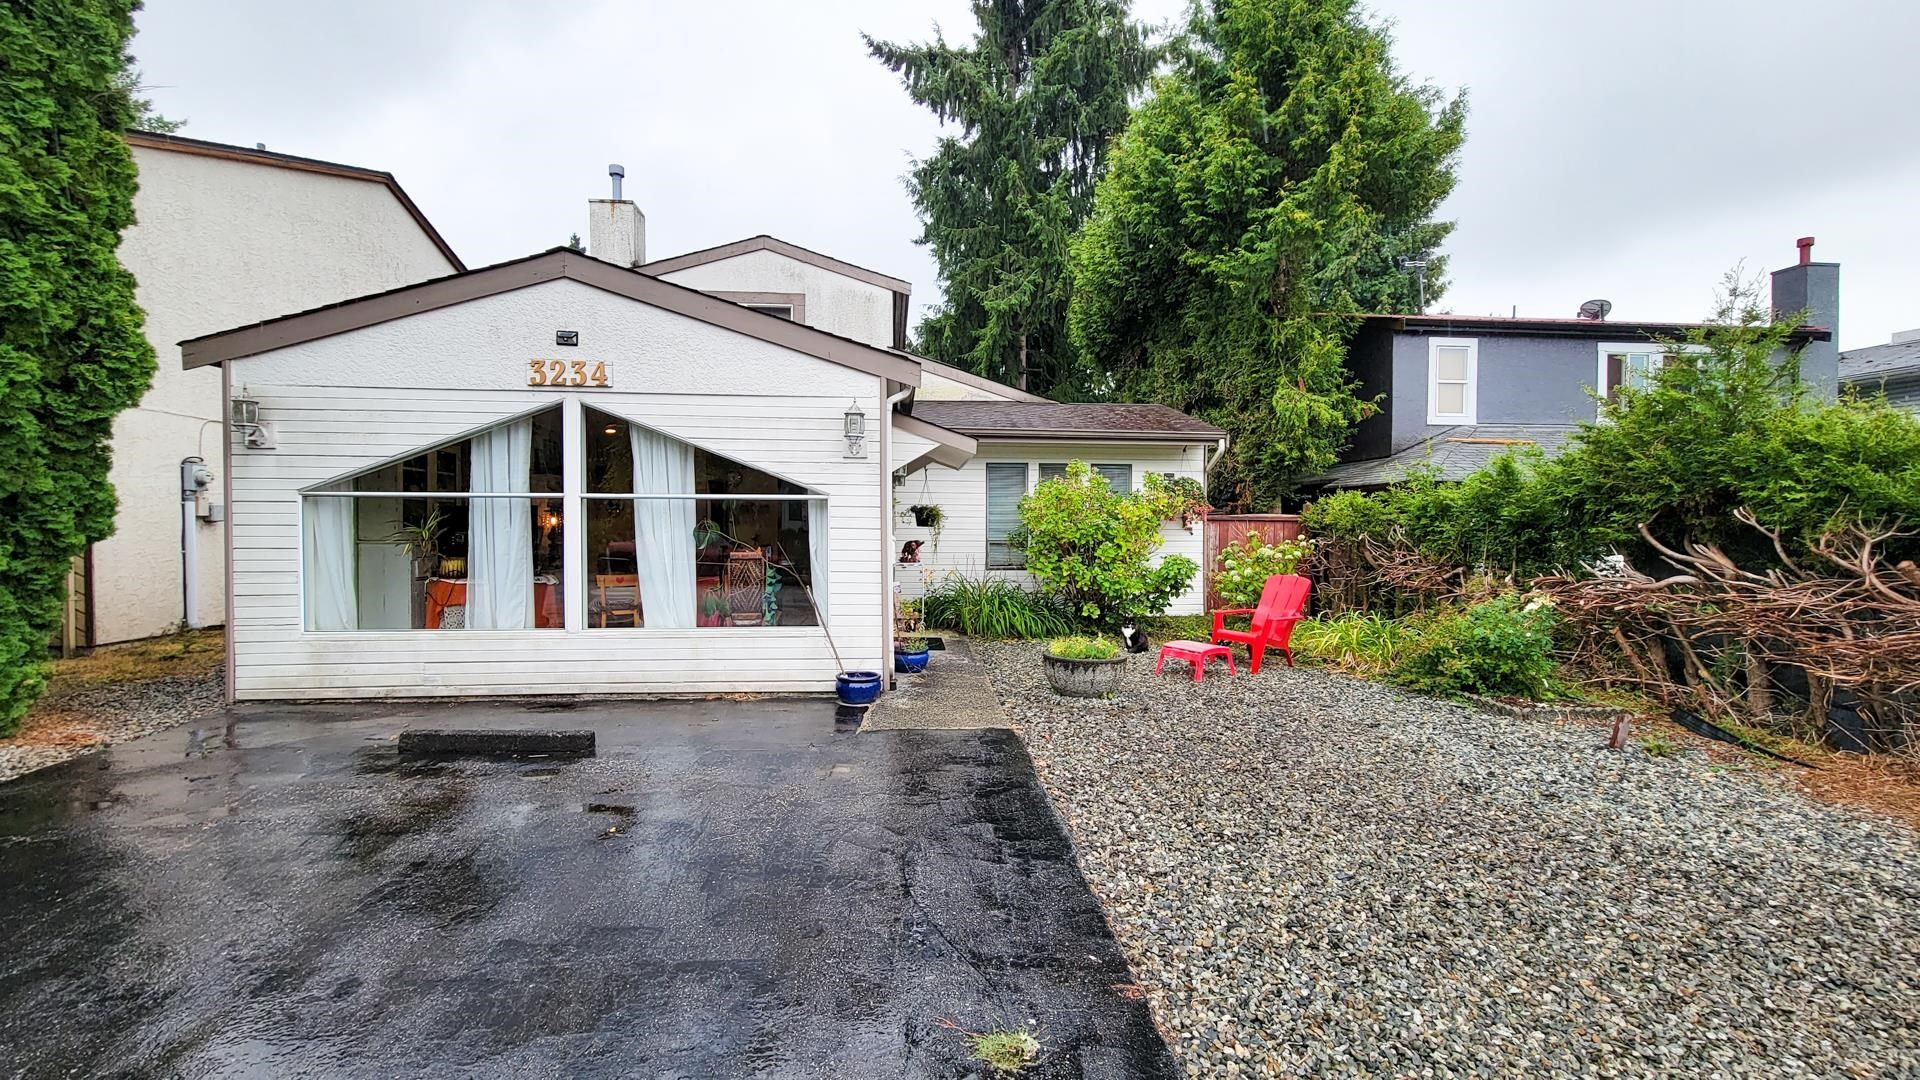 Main Photo: 3234 MAYNE CRESCENT in Coquitlam: New Horizons House for sale : MLS®# R2613688